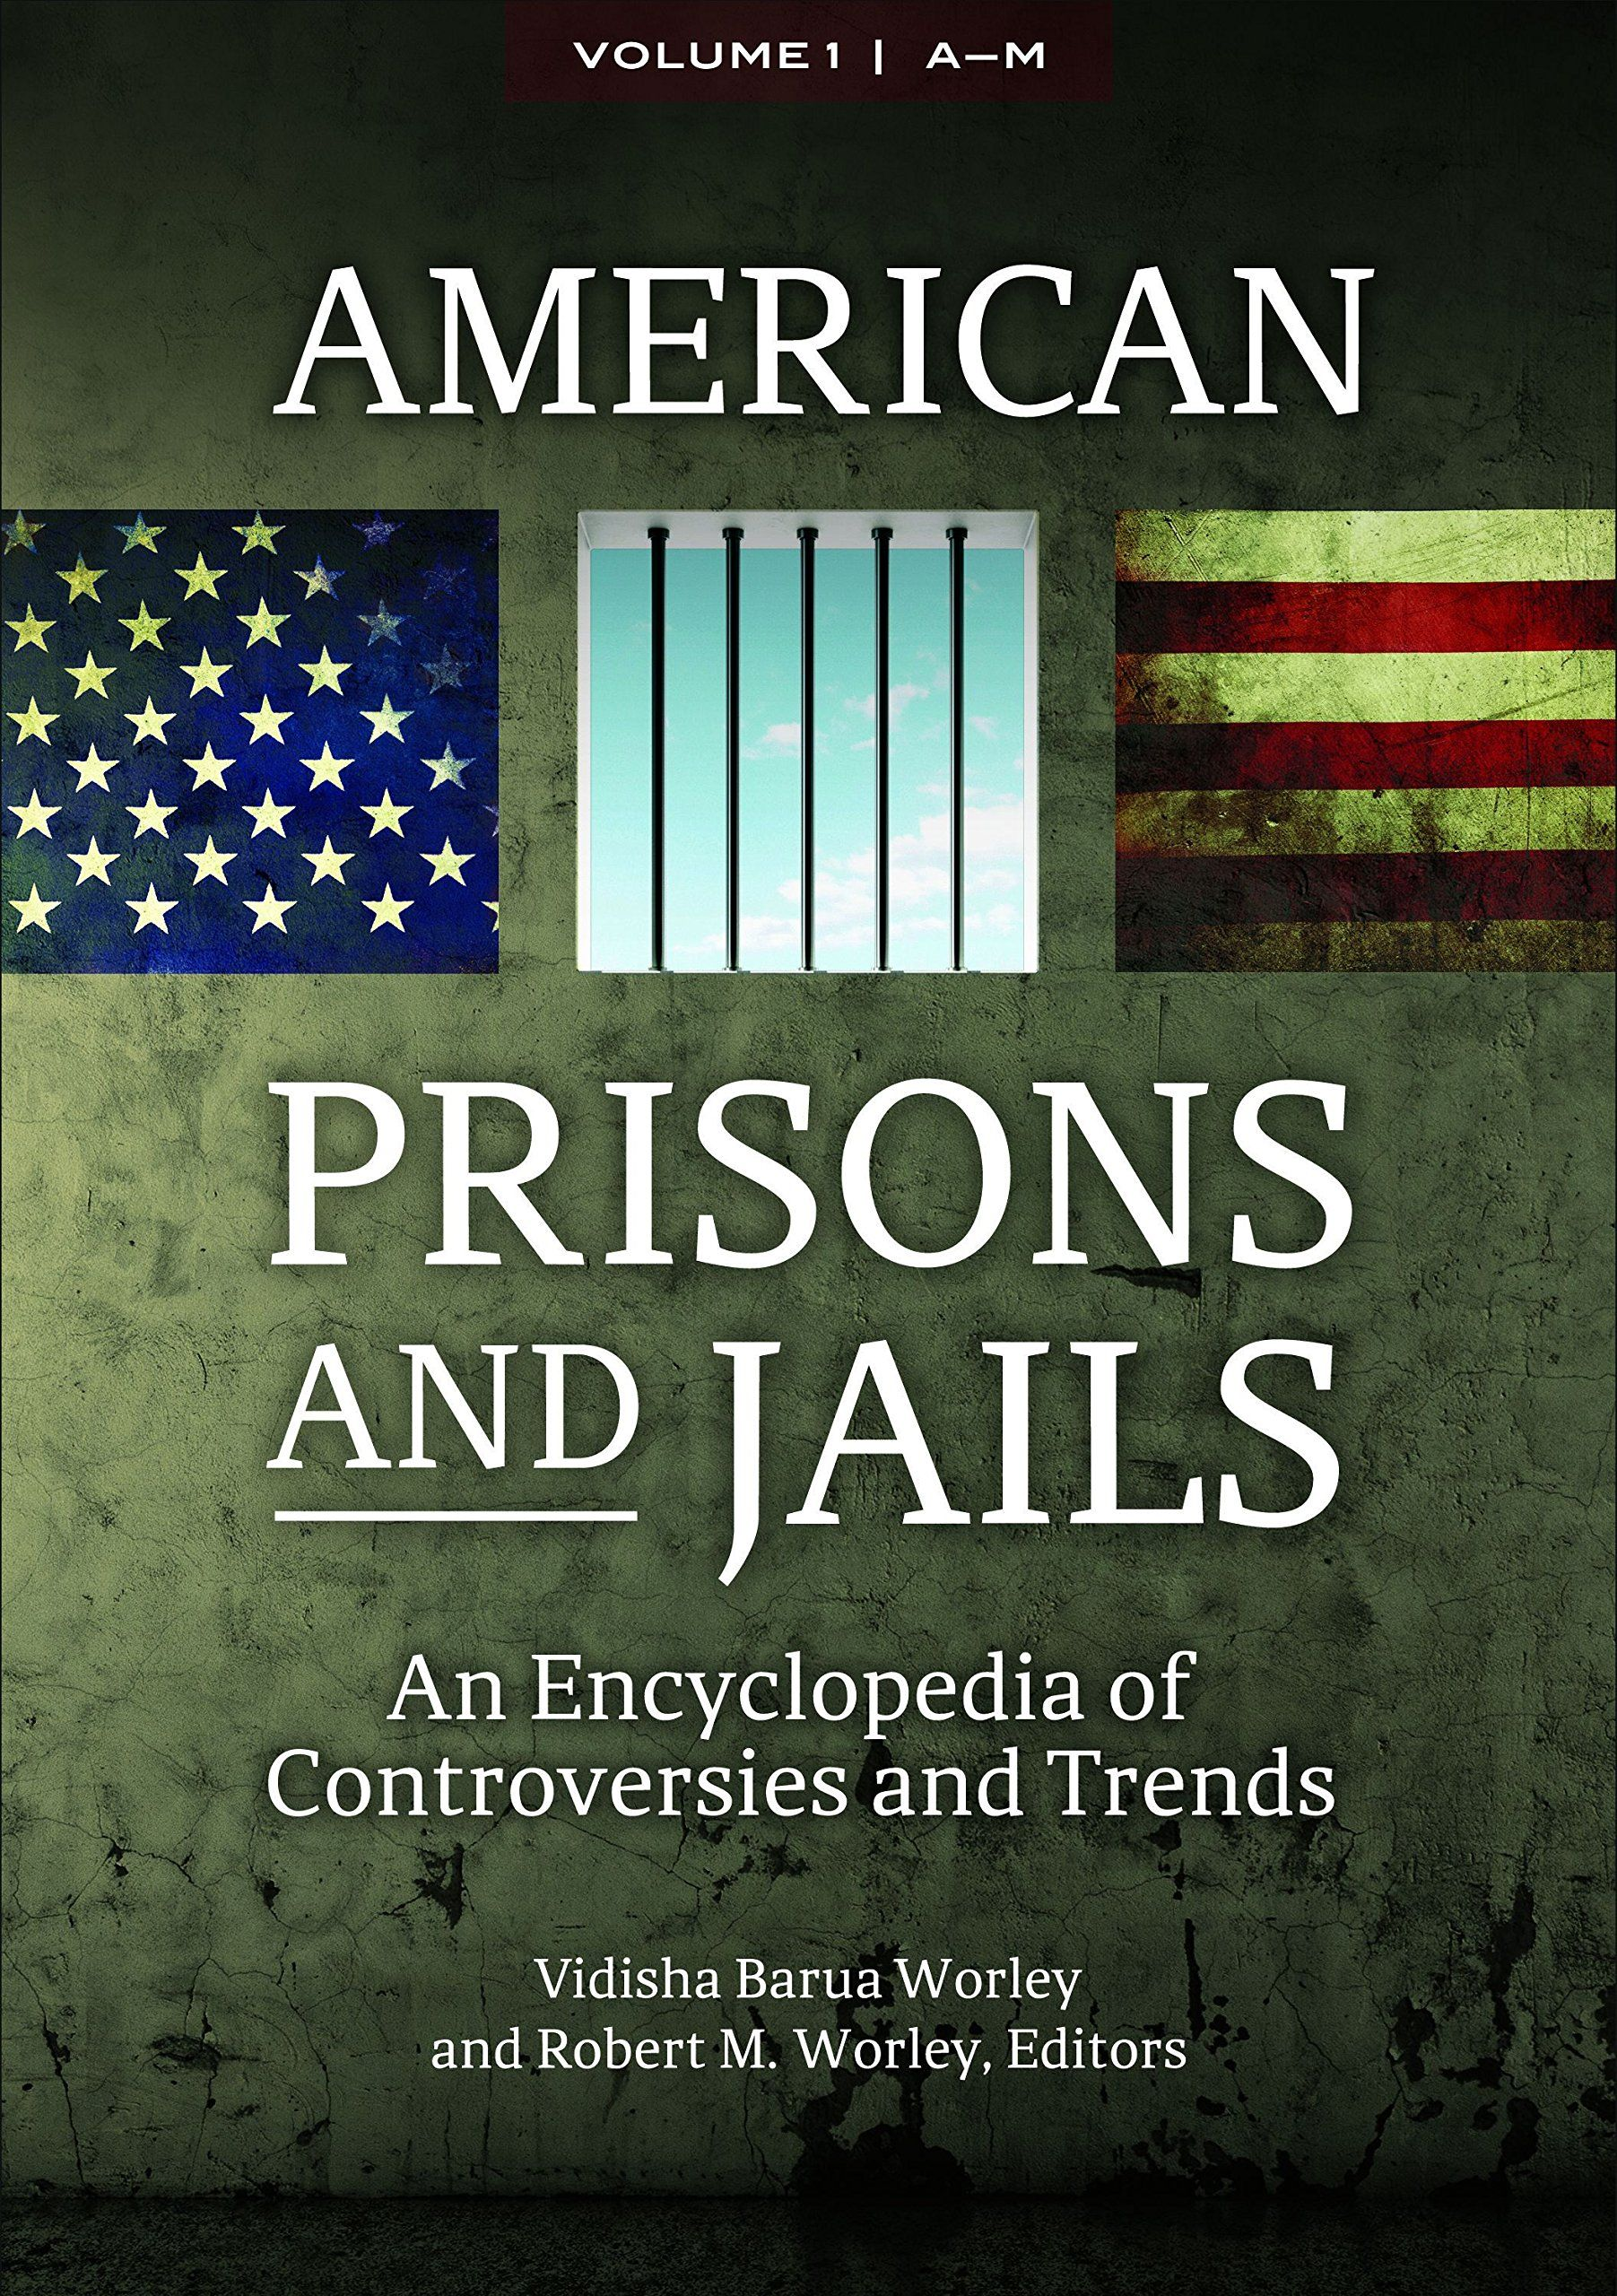 American Prisons and Jails [2 volumes]: An Encyclopedia of